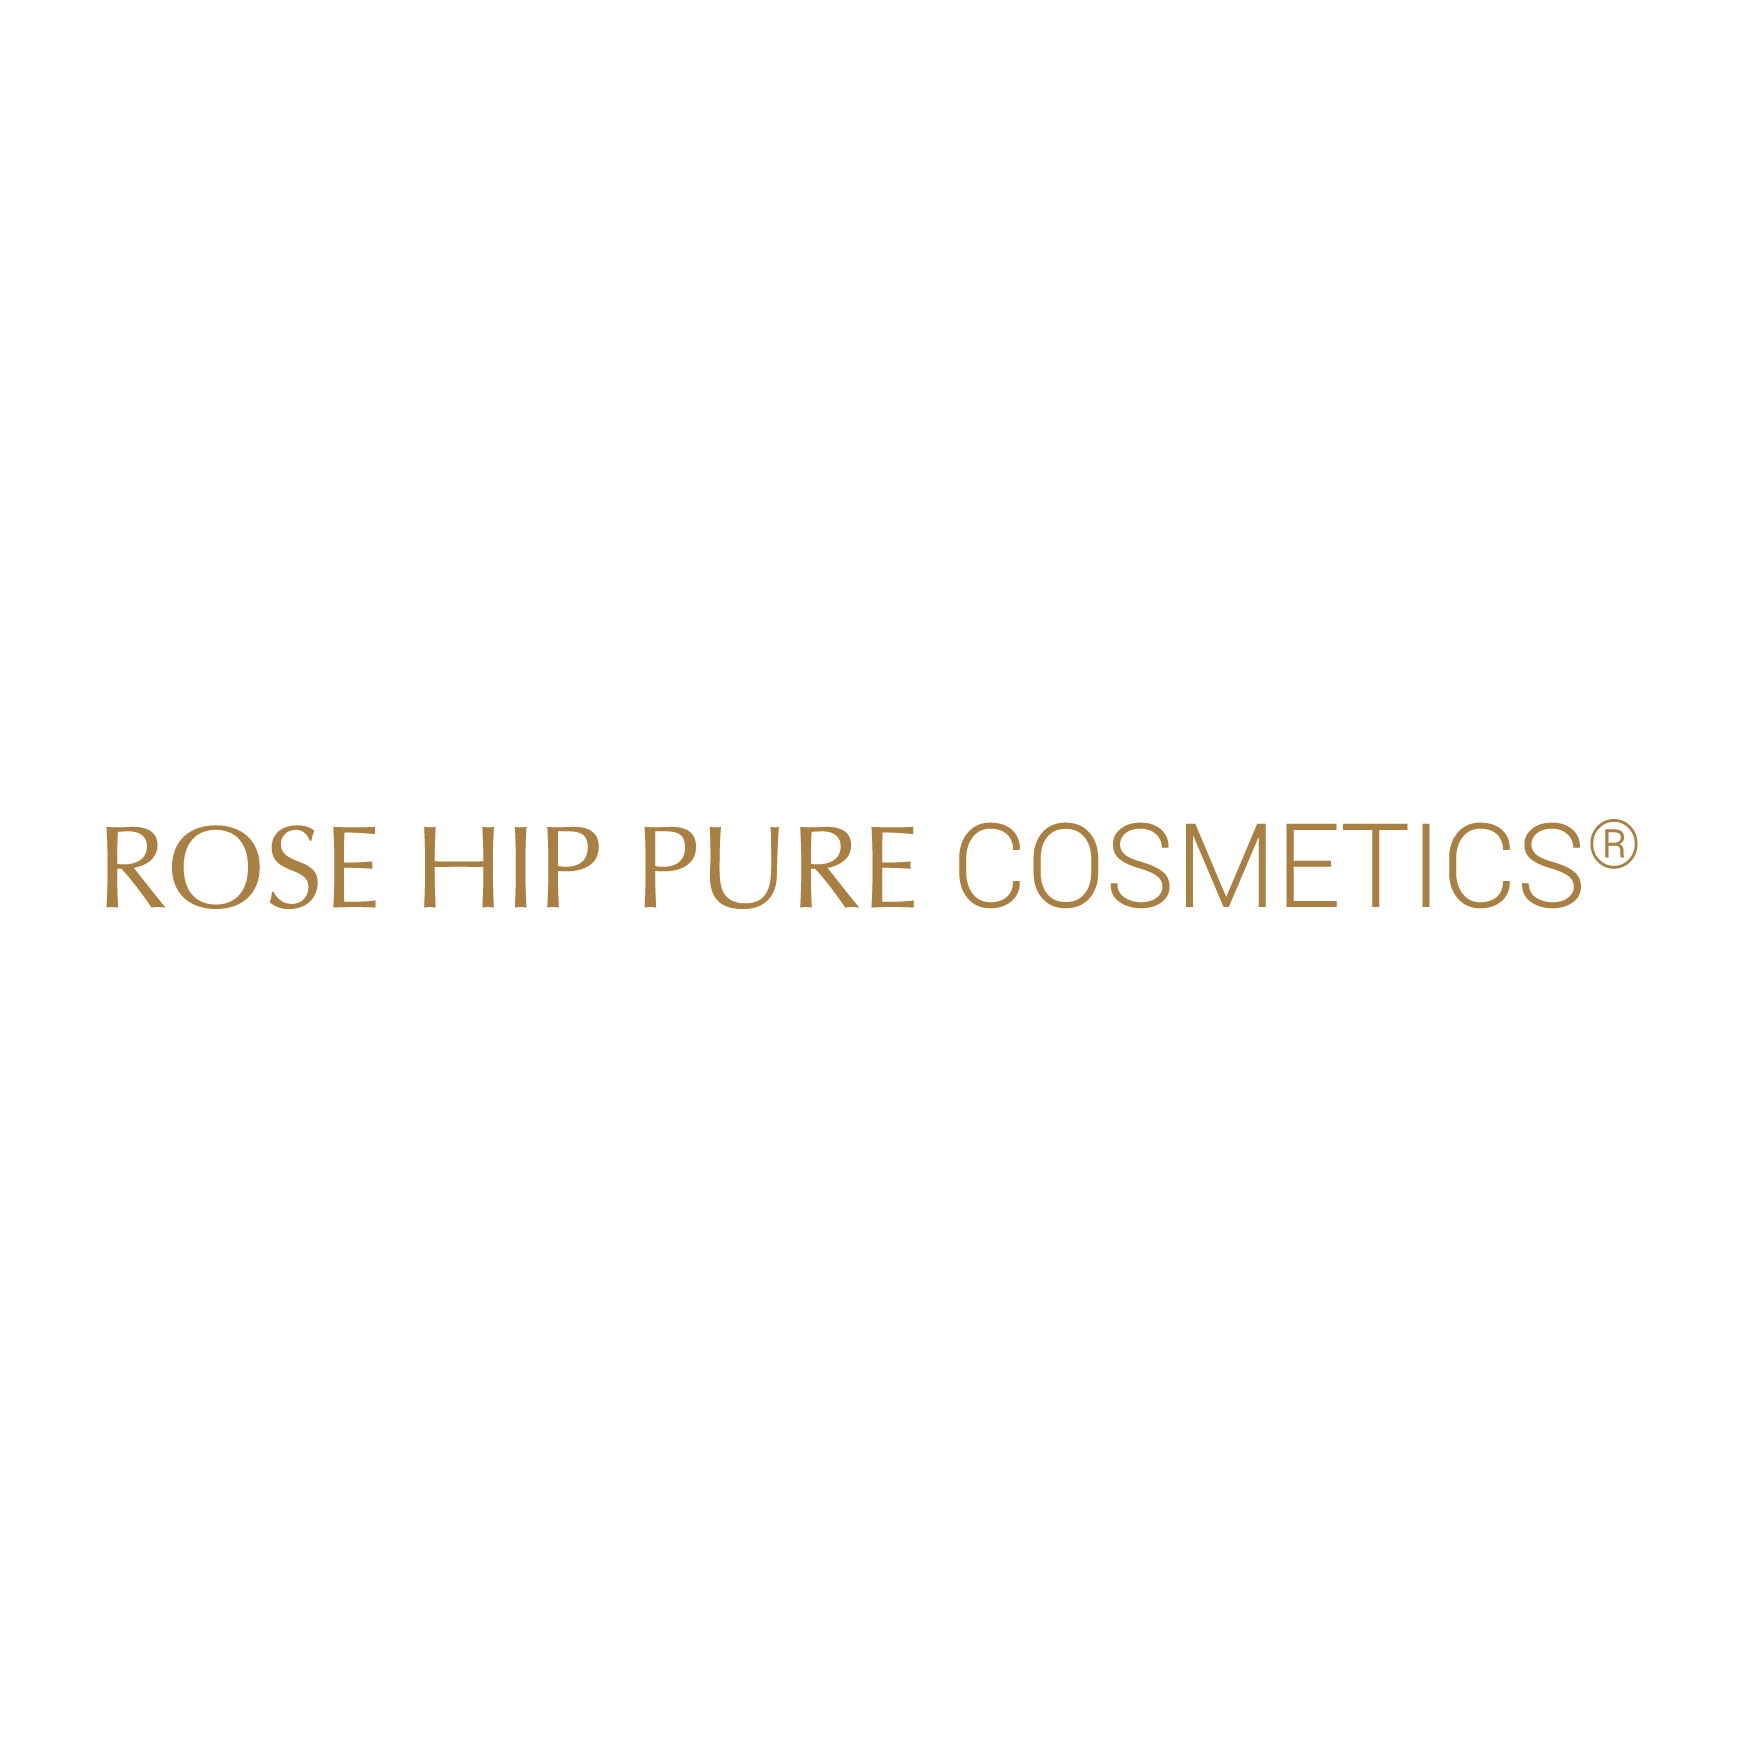 Rose Hip Pure